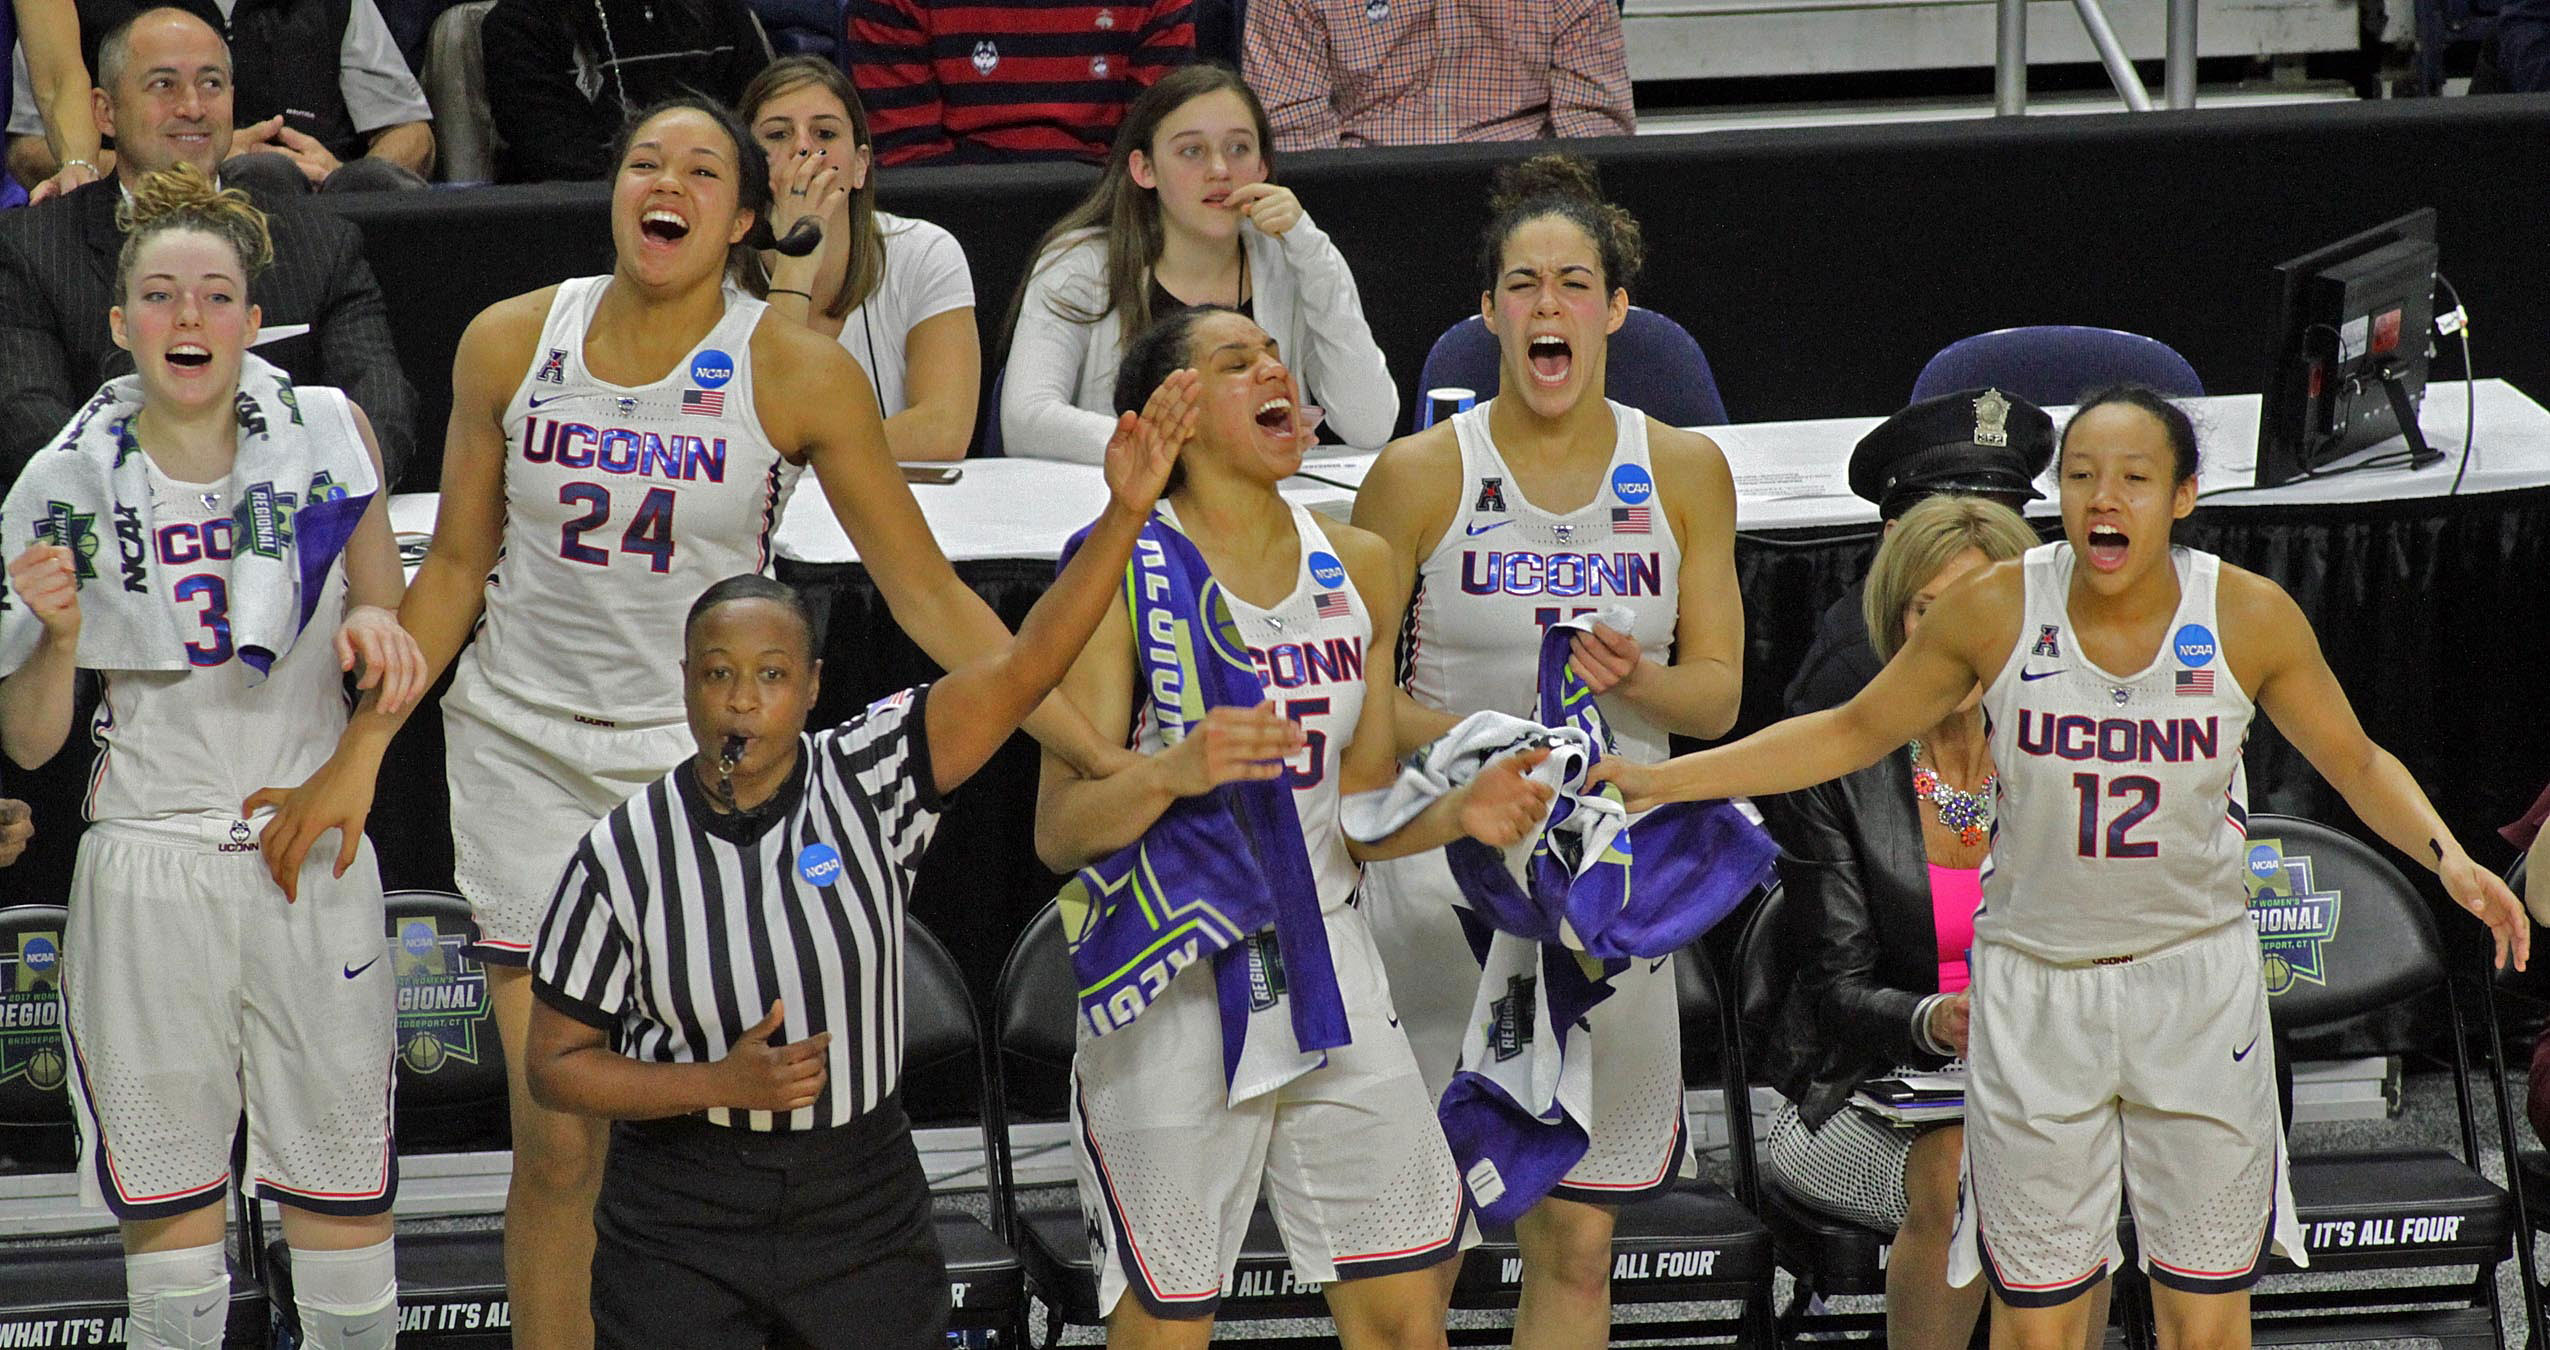 Group shot of UConn Women's Basketball team members cheering. From left:Katie Lou Samuelson '19 (CLAS), Napheesa Collier '19 (CLAS), Gabby Williams '18 (CLAS), Kia Nurse '18 (CLAS), and Saniya Chong '17 (CLAS) cheer on teammates (not pictured) Molly Bent '20 (ACES), Natalie Butler, Crystal Dangerfield '20 (ACES), Kyla Irwin '20 (CLAS), and Tierney Lawlor '17 (CAHNR) during their Elite Eight defeat of Oregon.